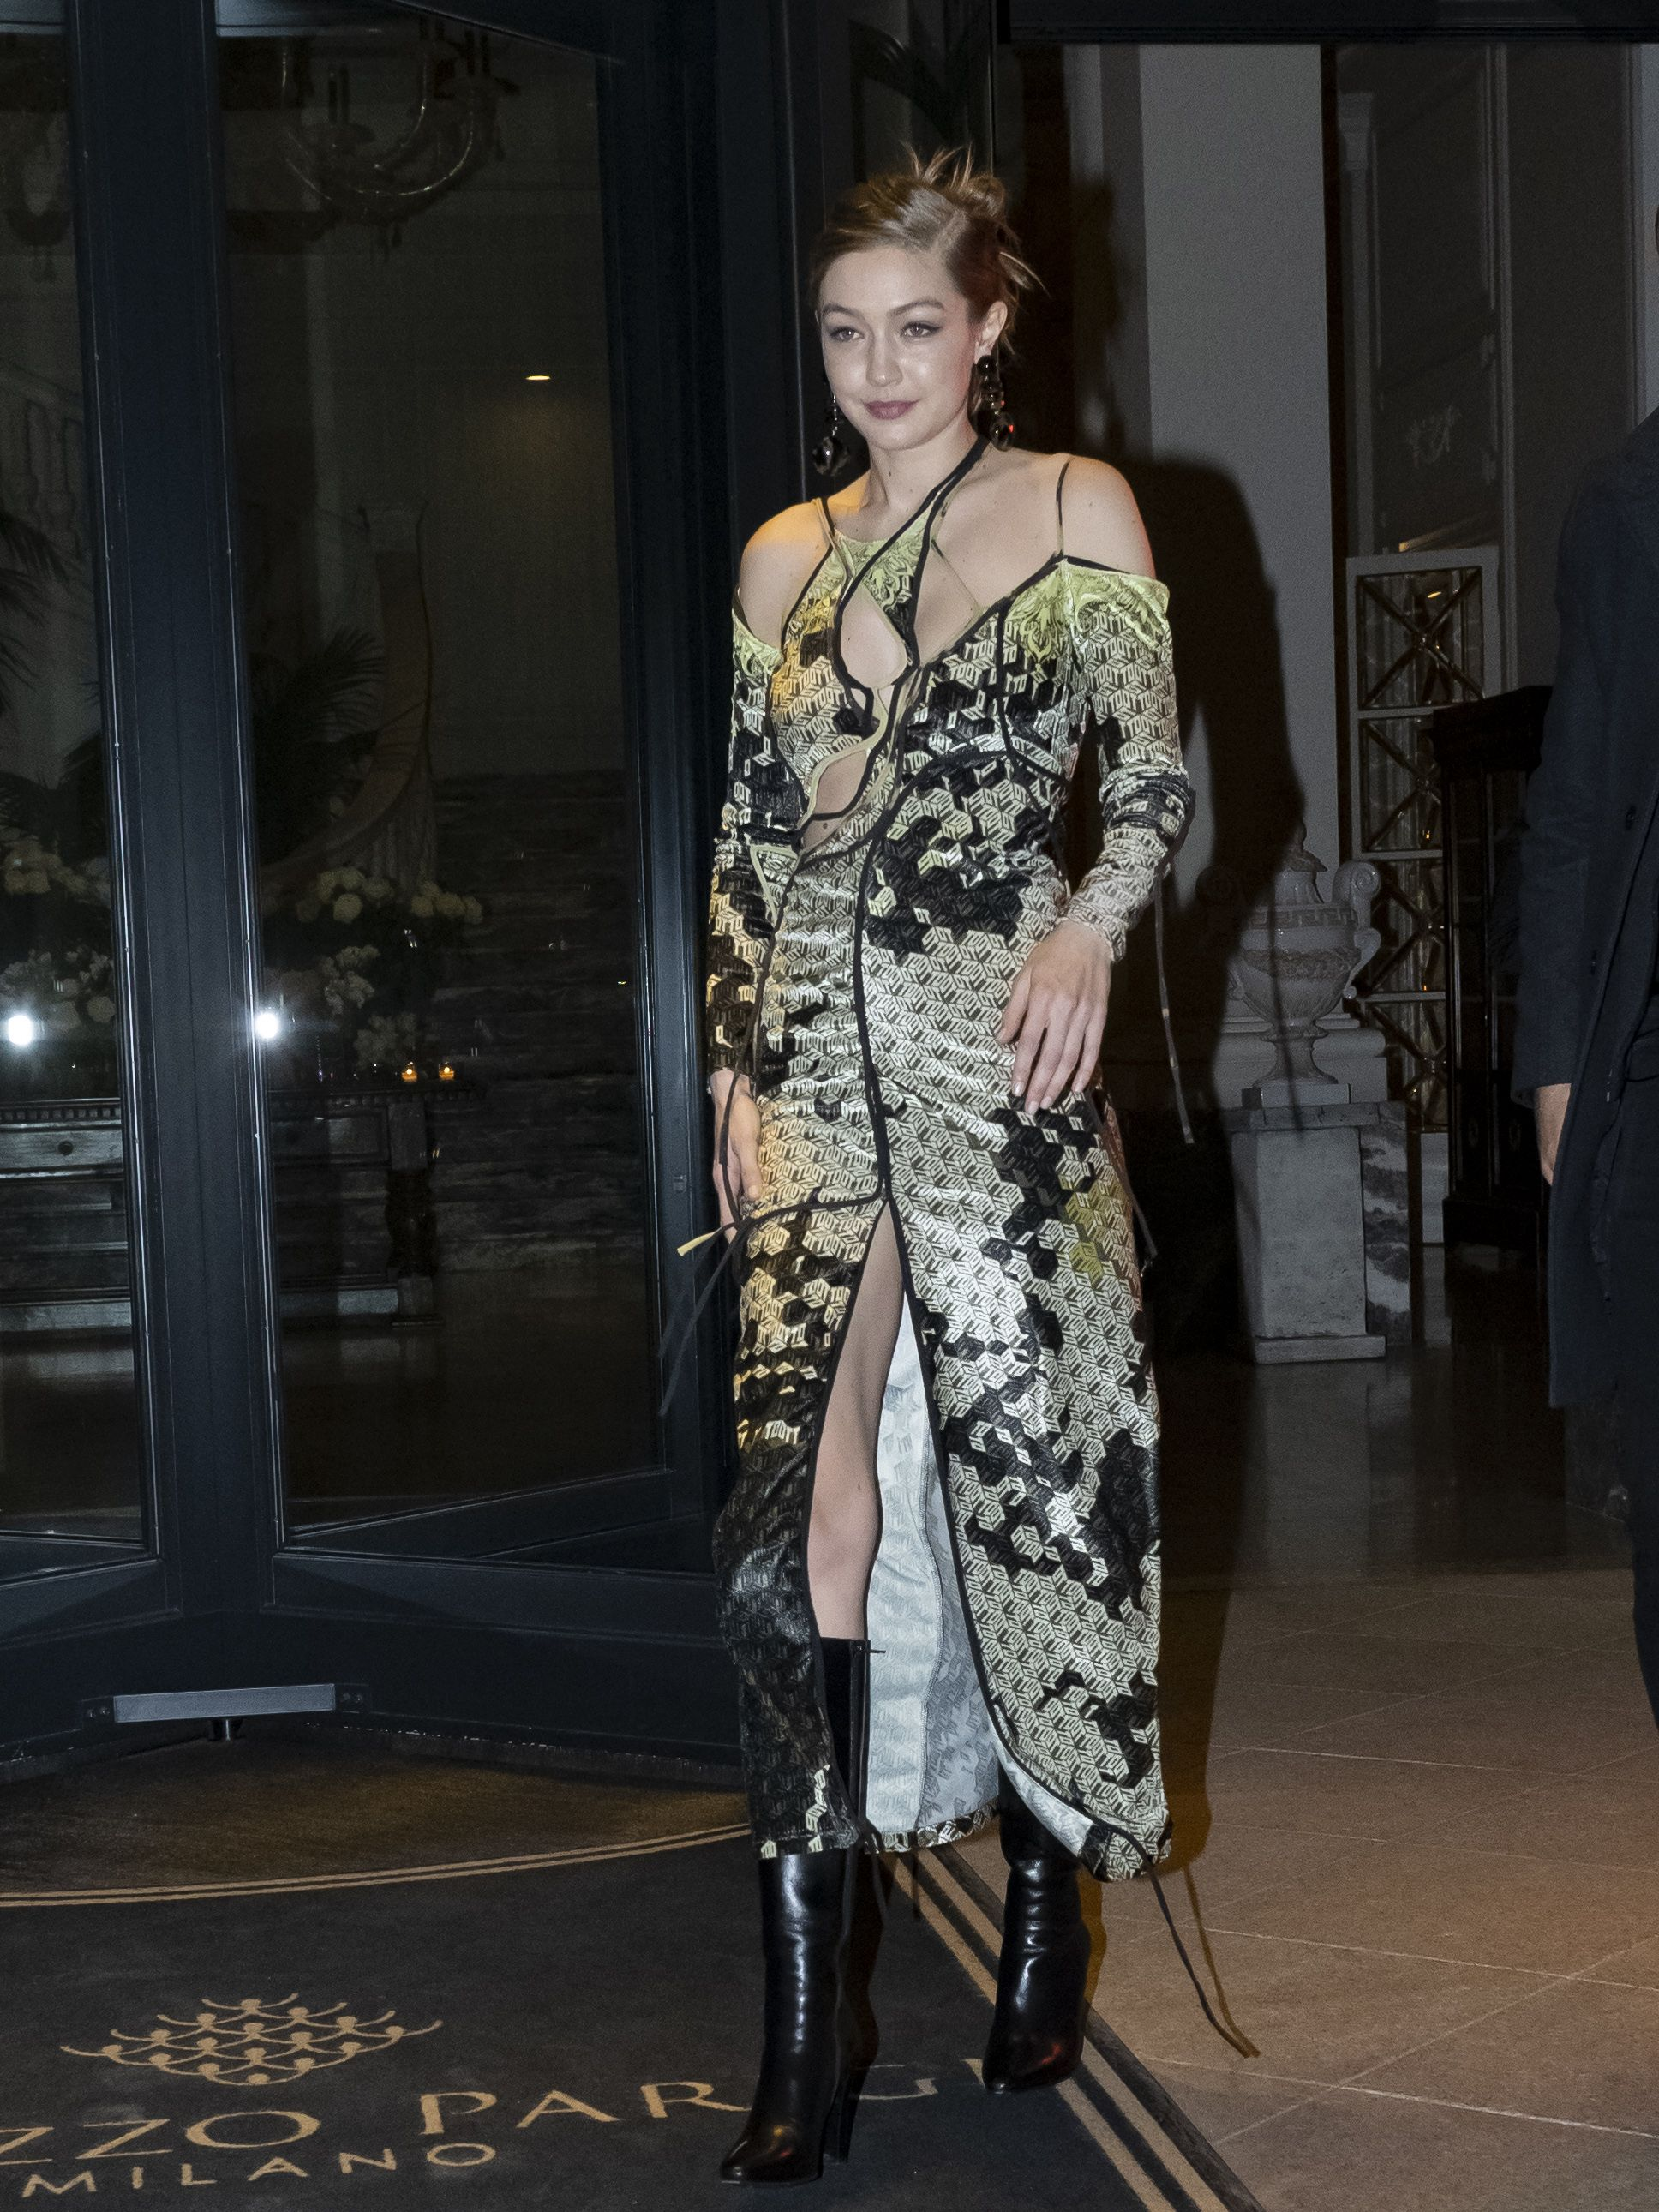 Gigi Hadid Wears An Ottolinger Gown With A Leg Slit In Milan